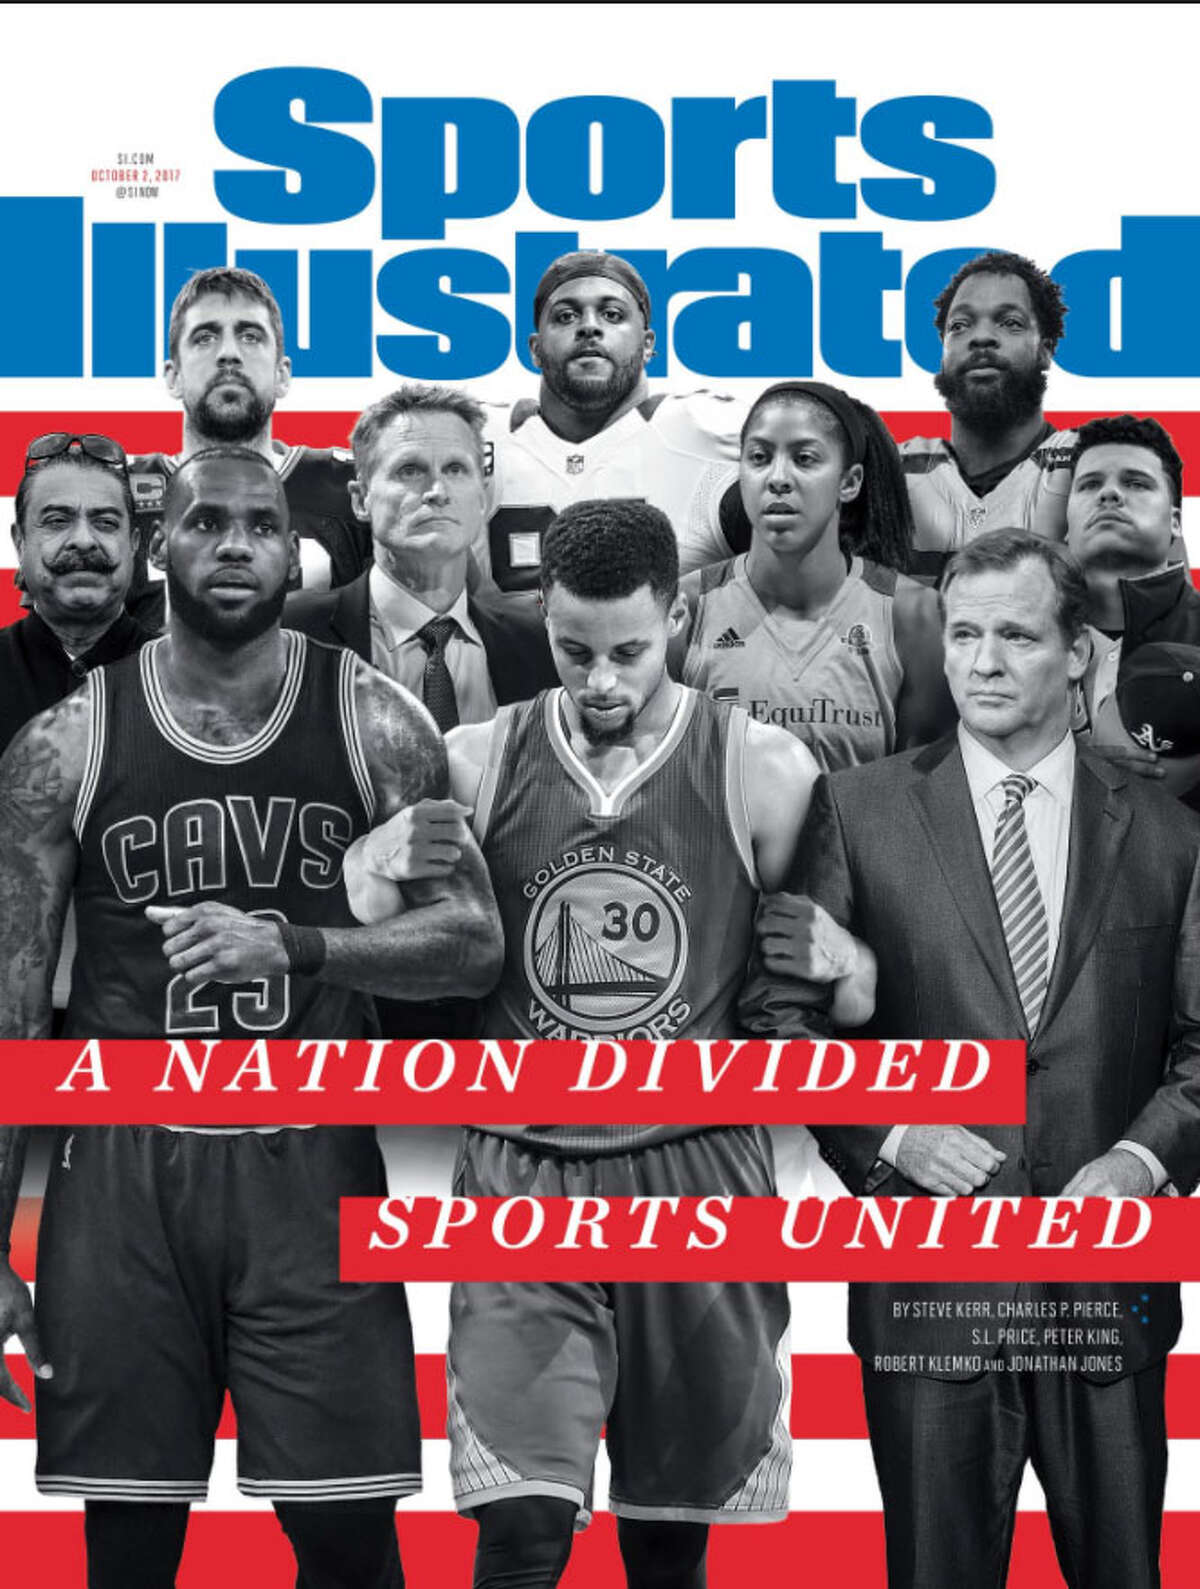 PHOTOS: A closer look at each player on the upcoming Sports Illustrated cover The Sports Illustrated cover for Oct. 2, 2017, features several prominent sports figures involved in the recent mix between sports and politics. Browse through the photos to see each person on the upcoming Sports Illustrated cover and why they made the cut.